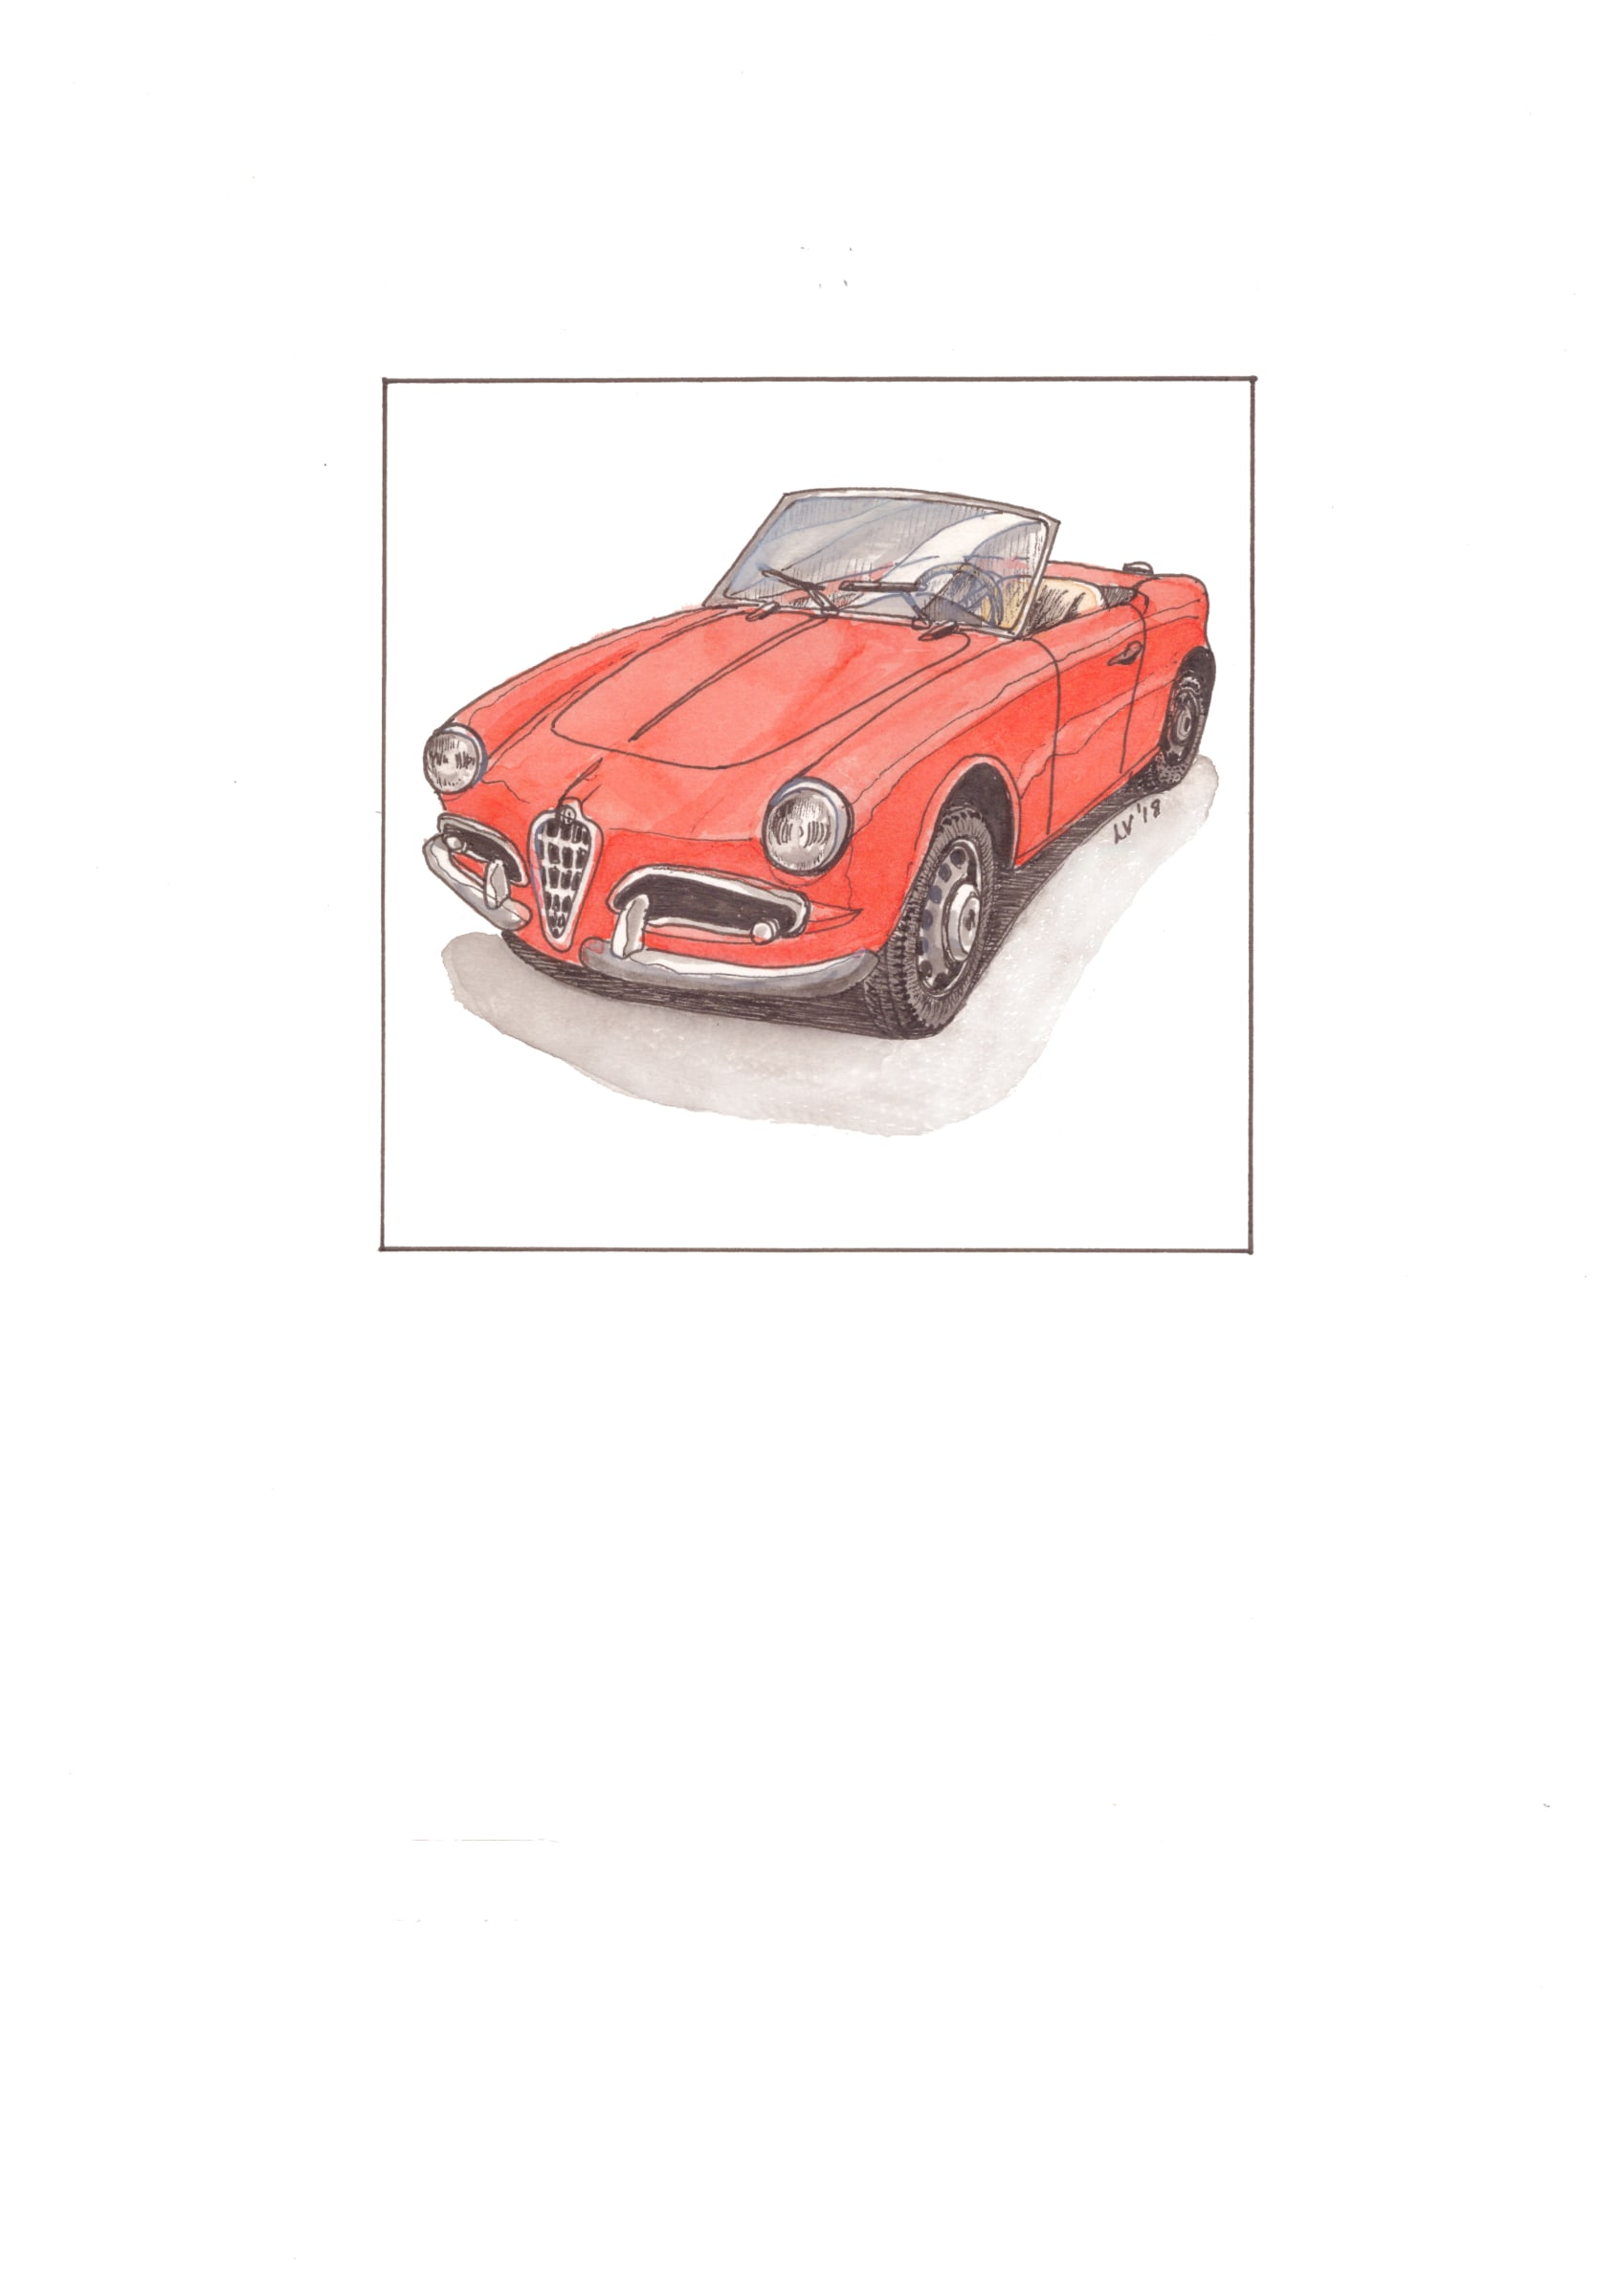 <span class=&#34;link fancybox-details-link&#34;><a href=&#34;/artists/71-leonora-venter/works/2253-leonora-venter-alfa-giulietta-spider-2018/&#34;>View Detail Page</a></span><div class=&#34;artist&#34;><strong>Leonora Venter</strong></div> <div class=&#34;title&#34;><em>Alfa Giulietta Spider</em>, 2018</div> <div class=&#34;medium&#34;>Coloured Ink On Paper</div> <div class=&#34;dimensions&#34;>14.5cm x 10.5cm</div><div class=&#34;price&#34;>R600.00</div>